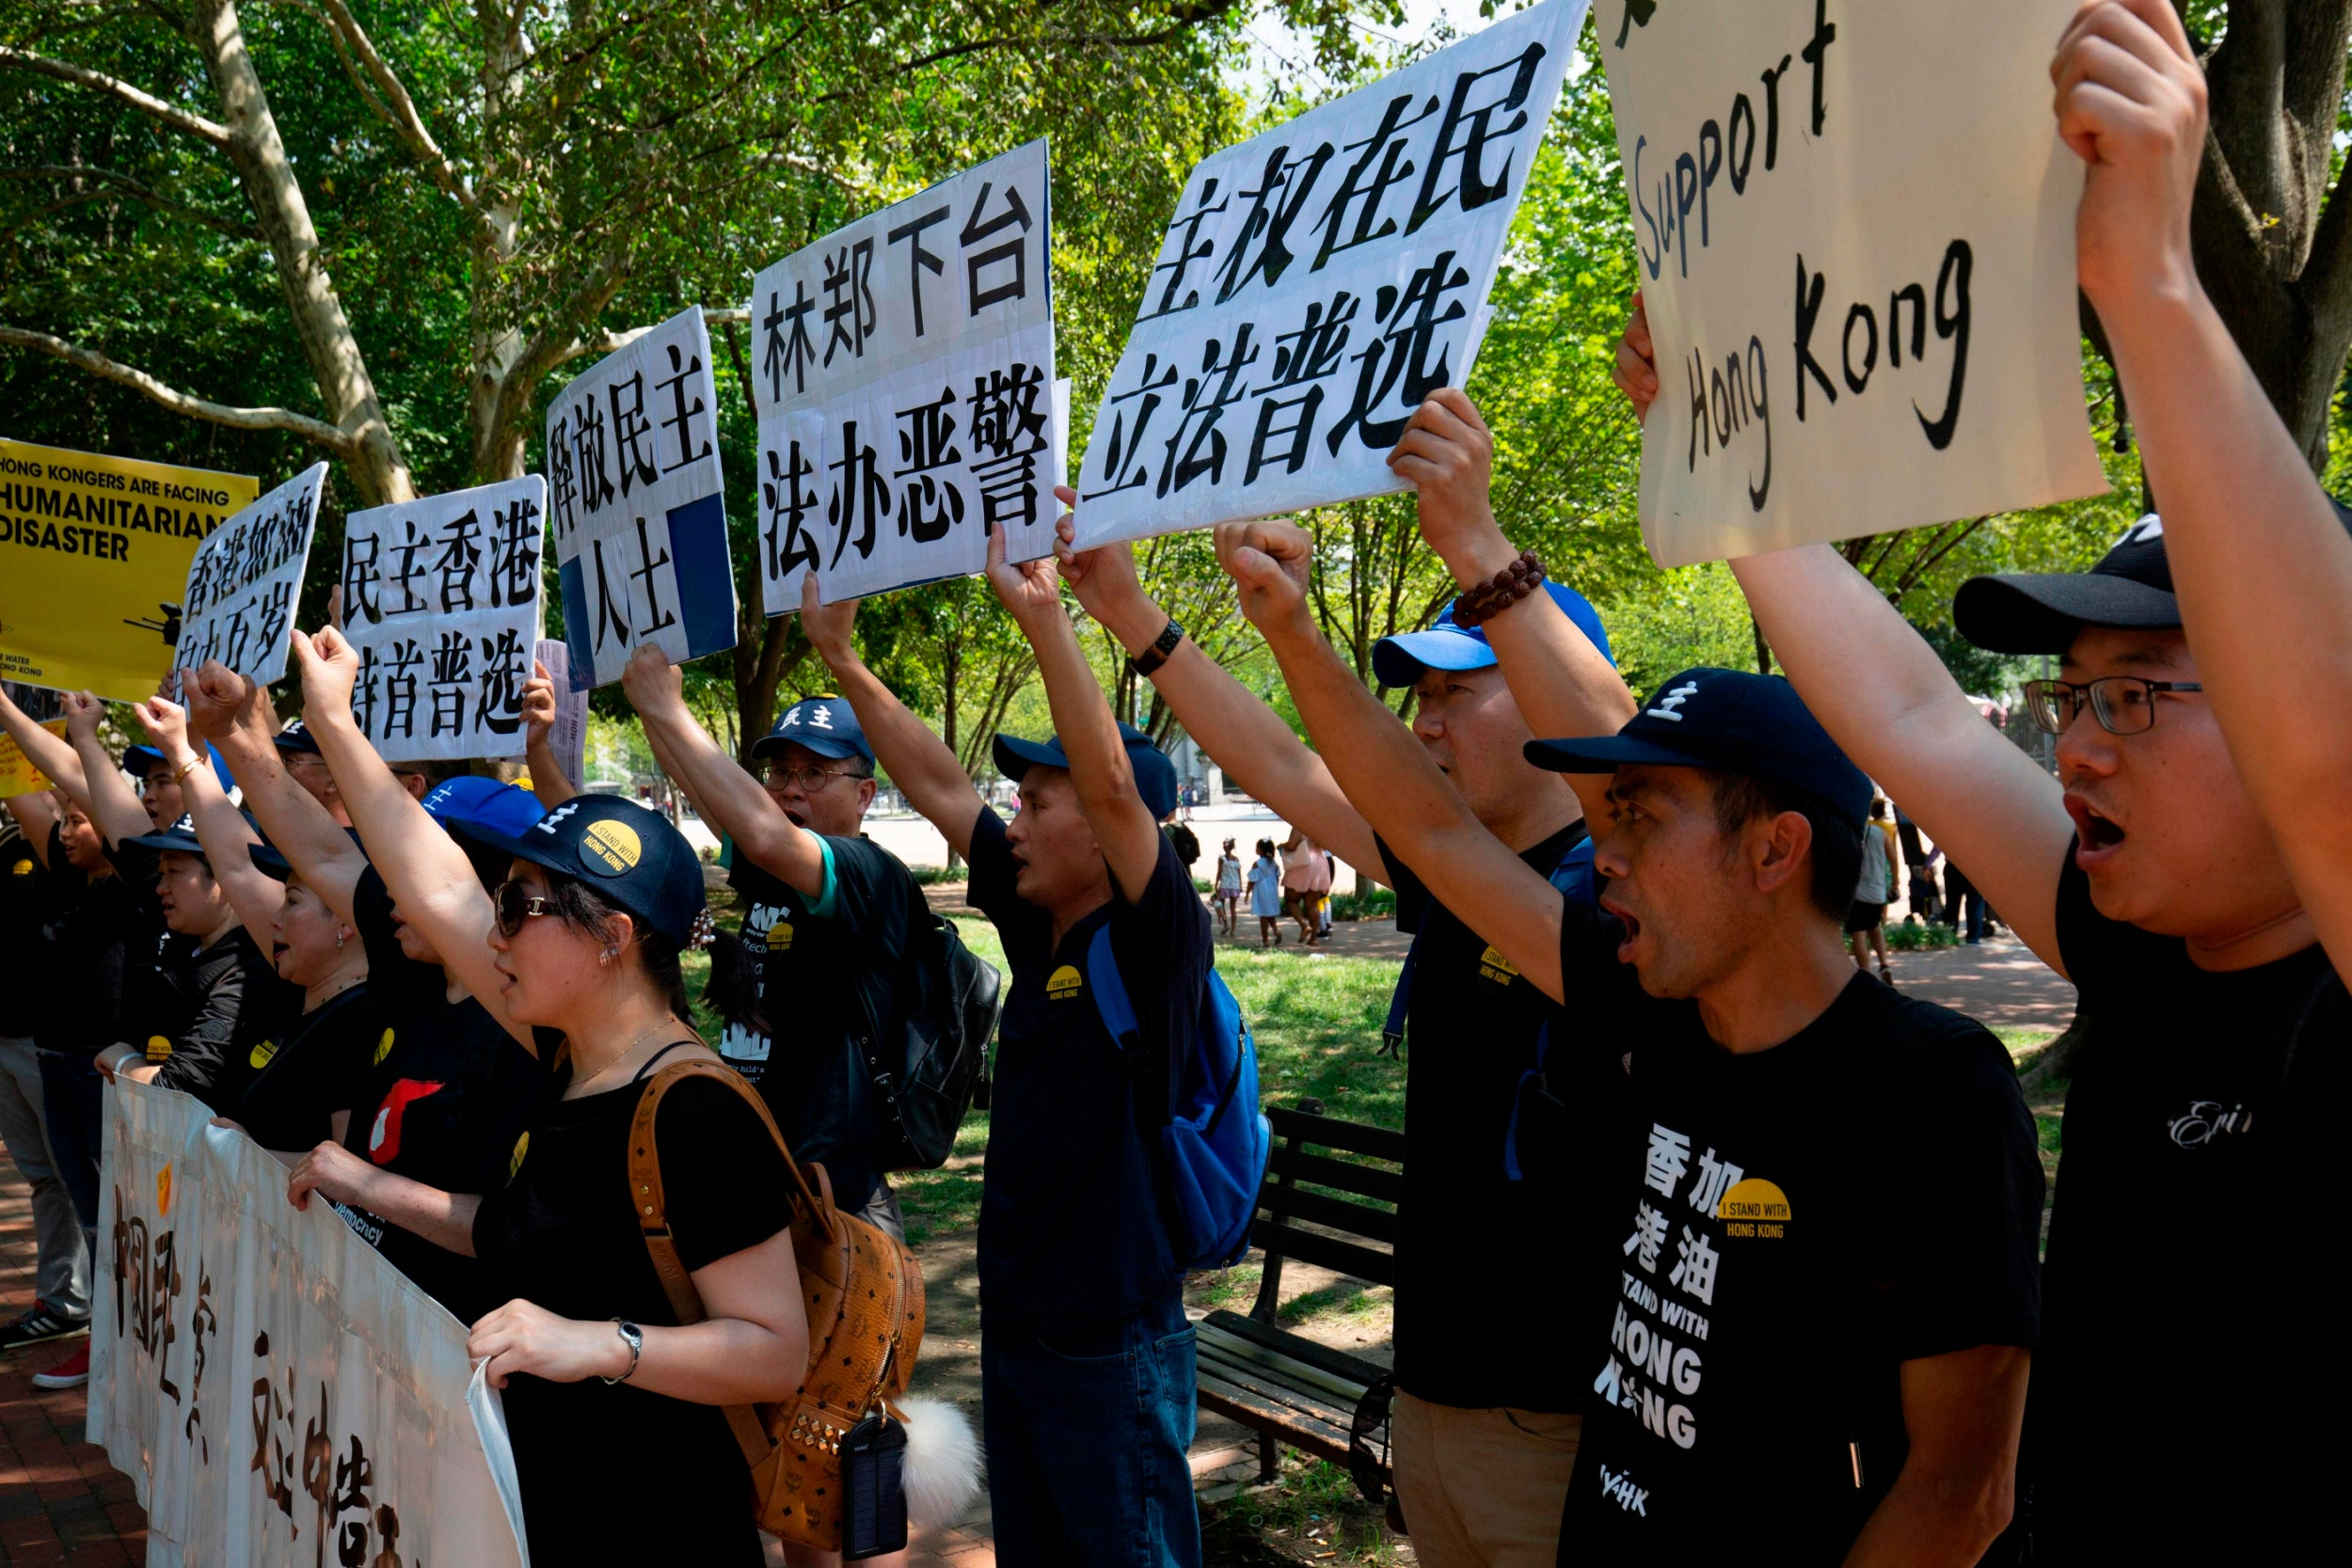 I've been talking to Hong Kong's protesters and this is their message for Boris Johnson